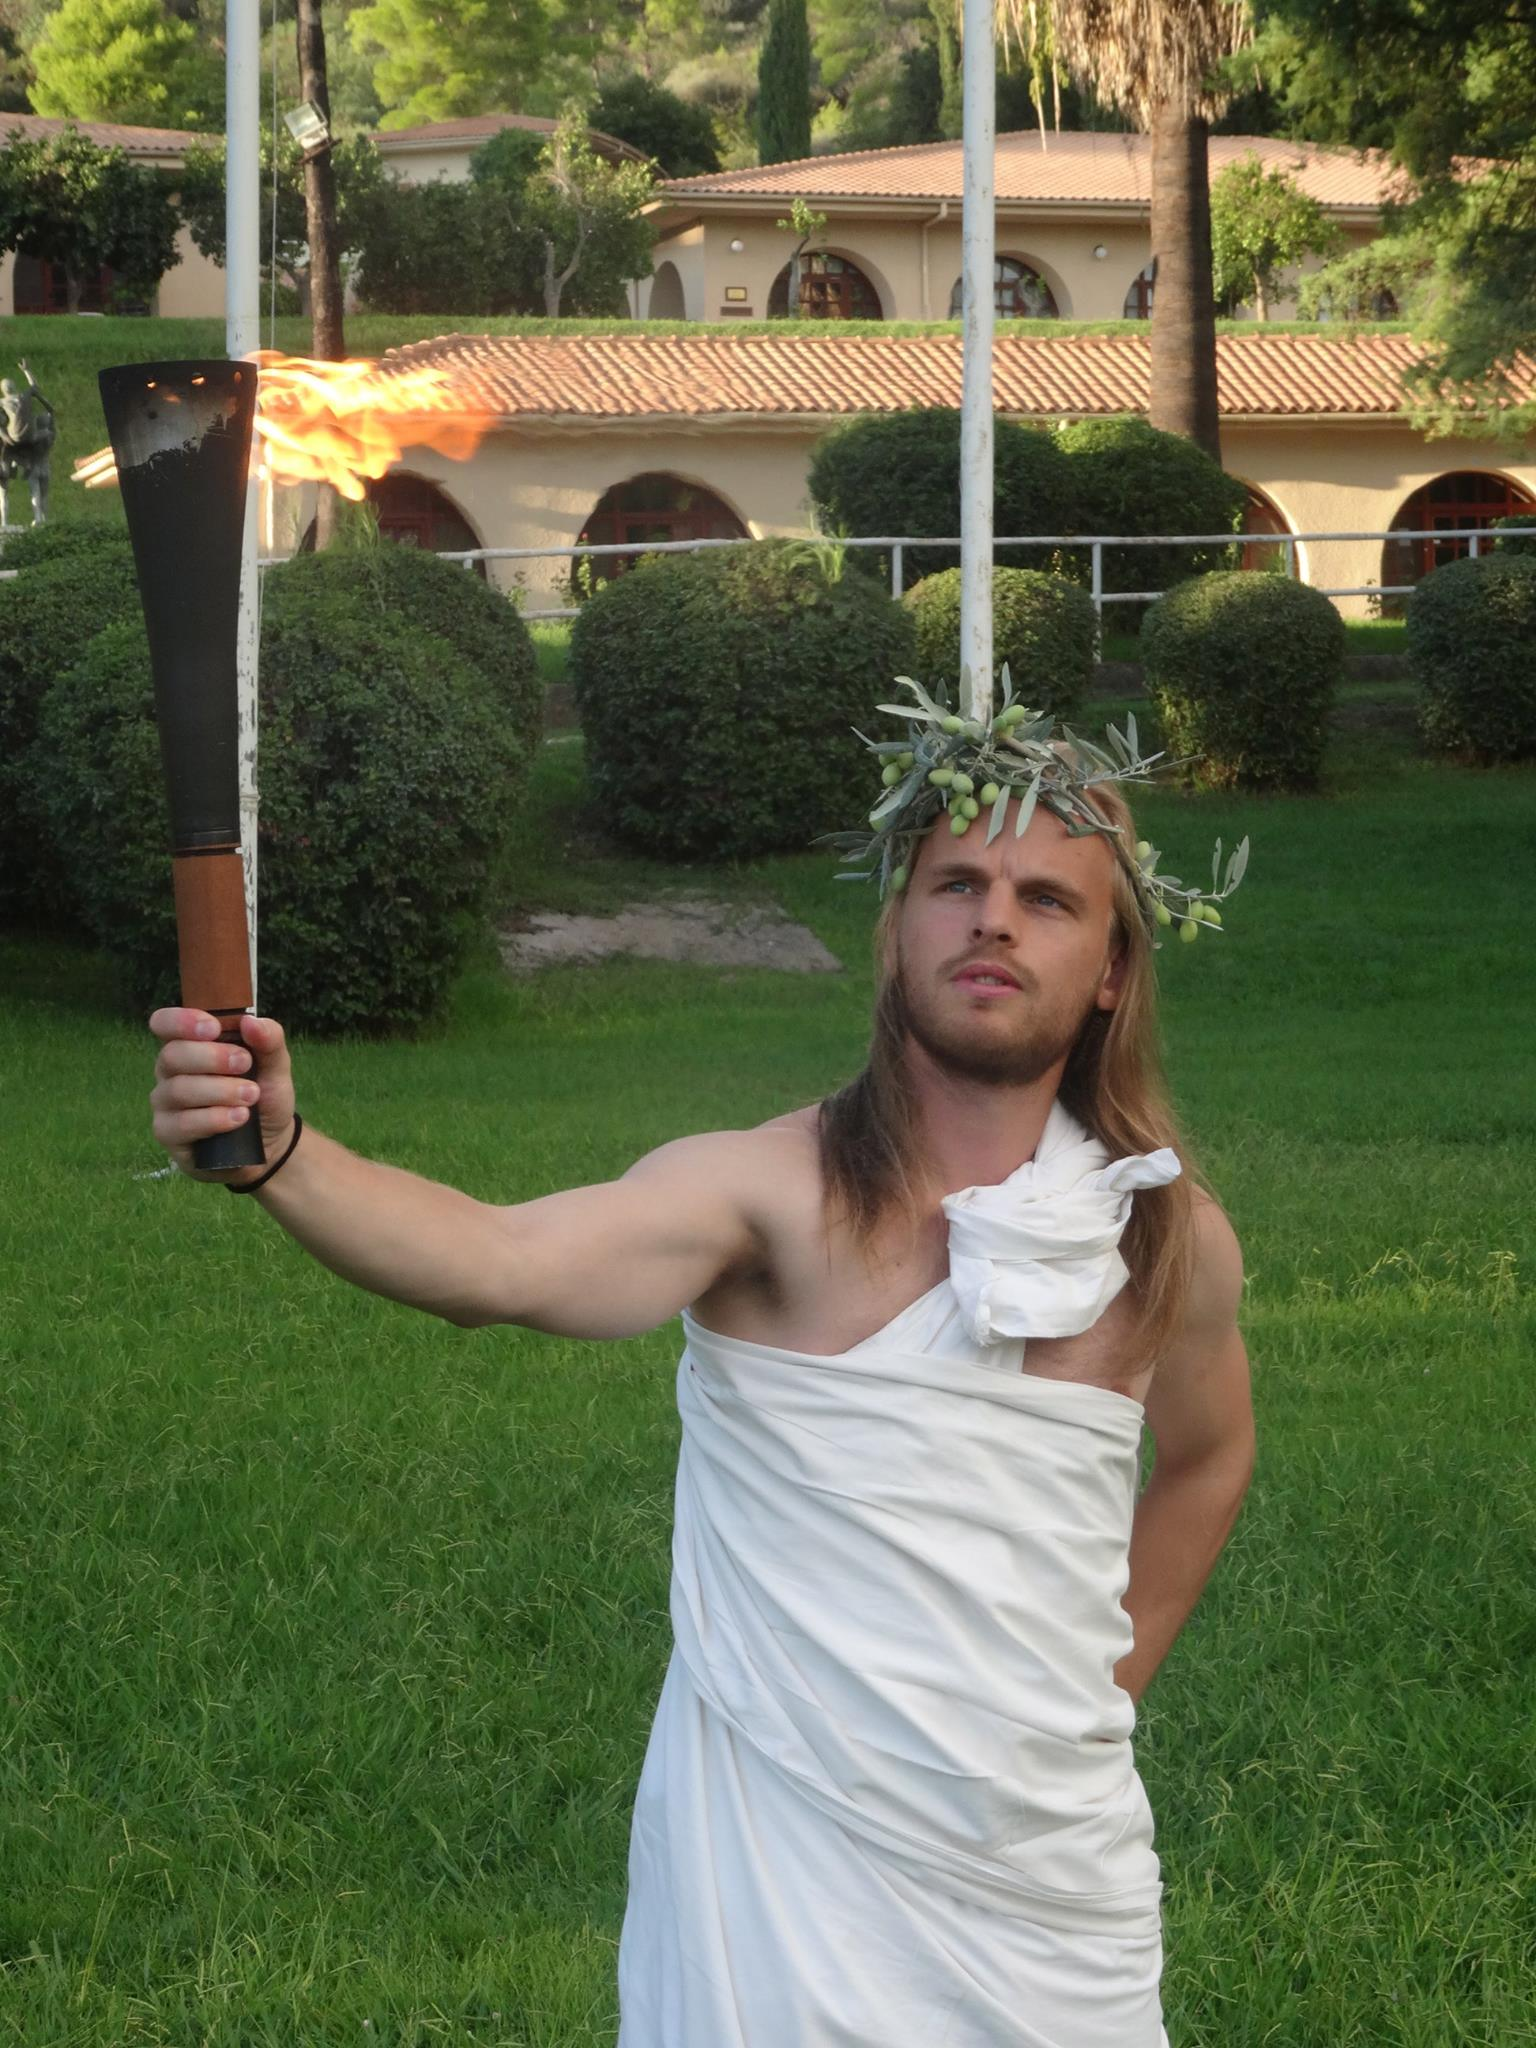 A somewhat skeptical Swedish torch bearer